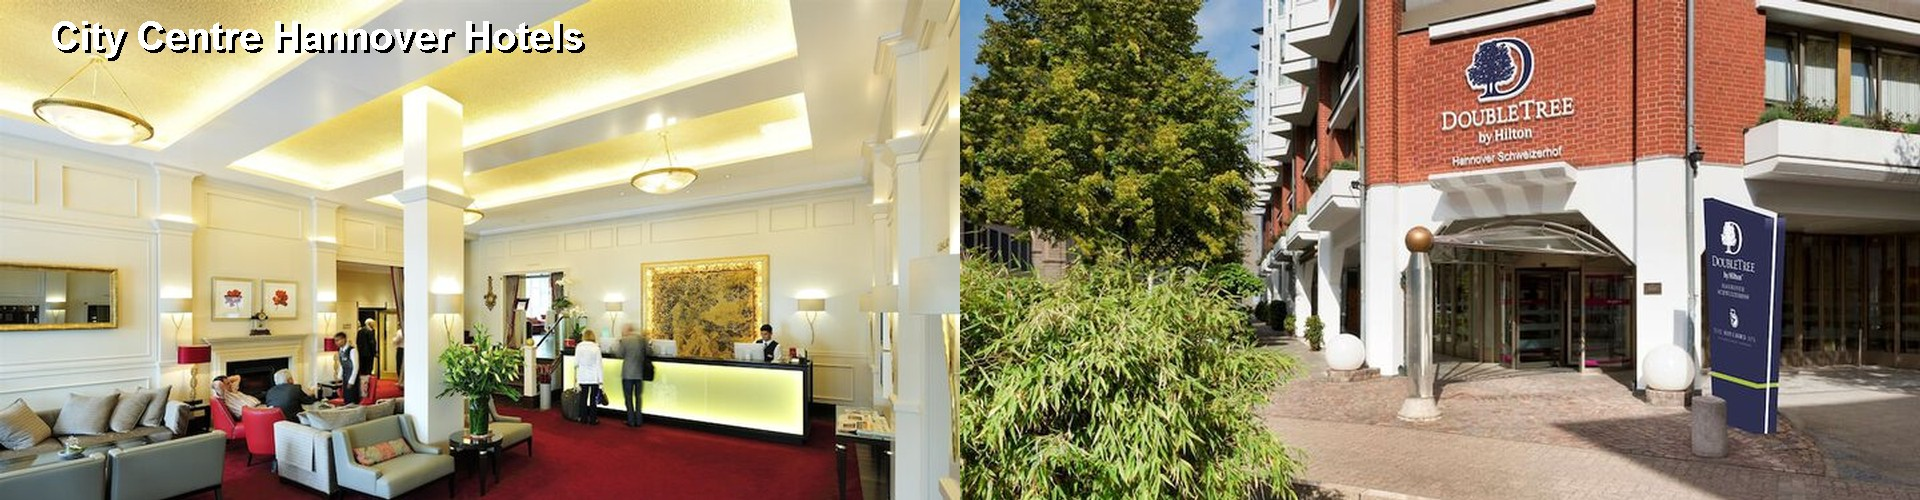 5 Best Hotels near City Centre Hannover